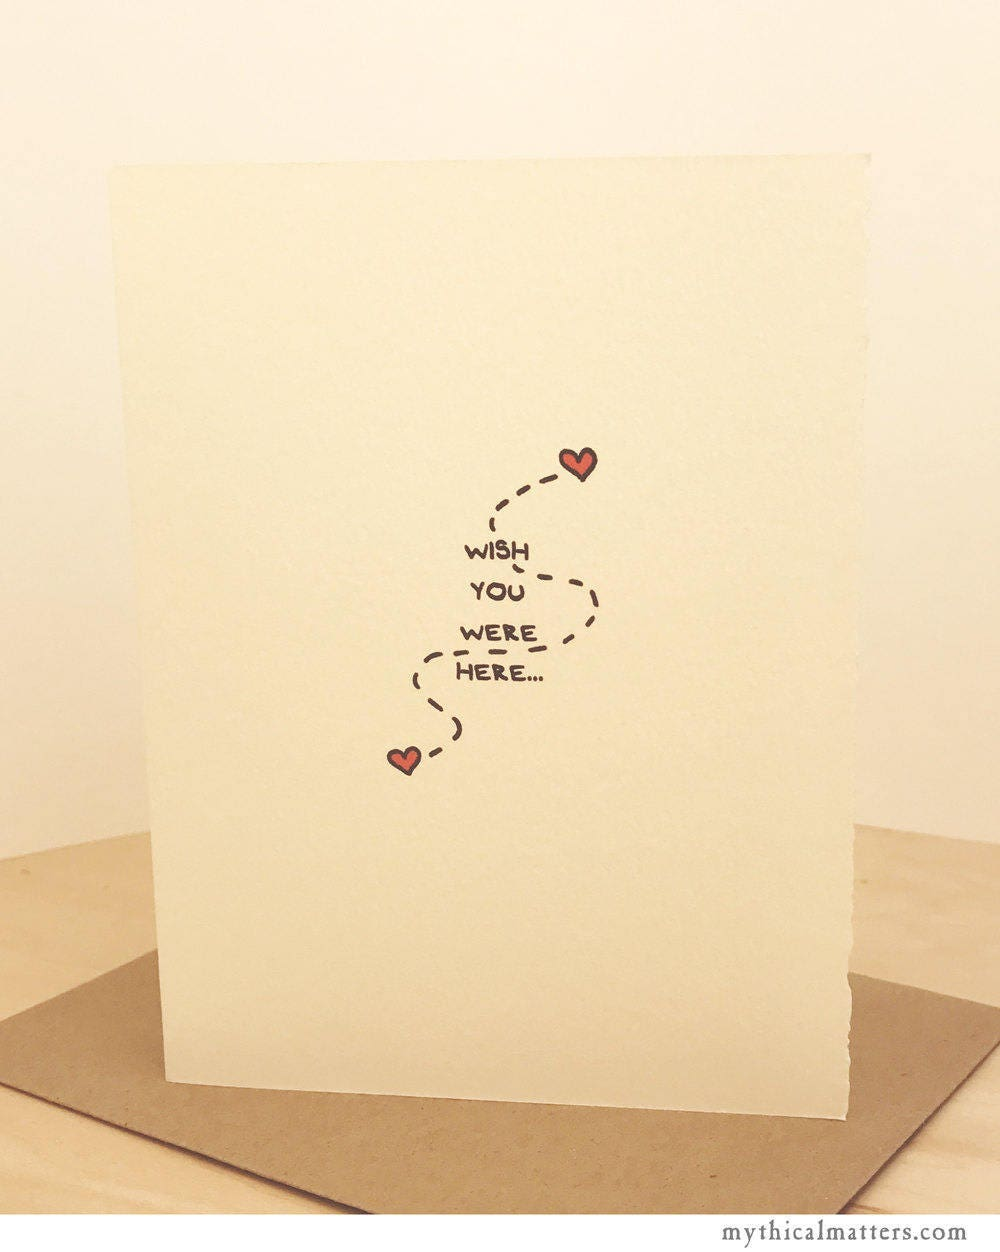 Wish You Were Here Miss You Greeting Card Cute Valentine Sentiment